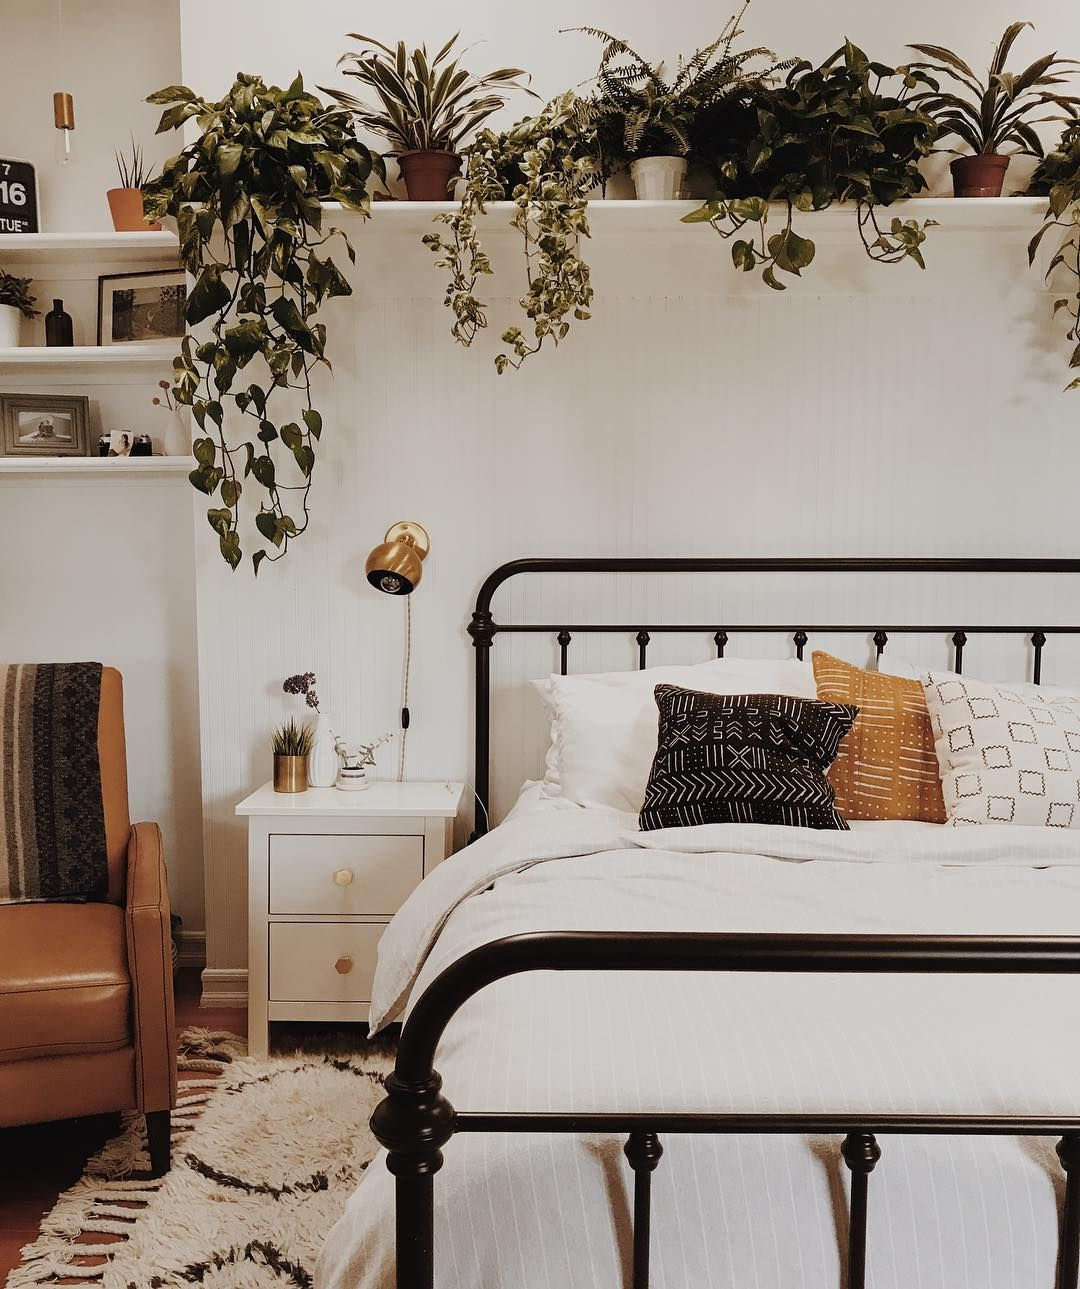 Pin by sally aguirre on diy pinterest bedroom home and bedroom